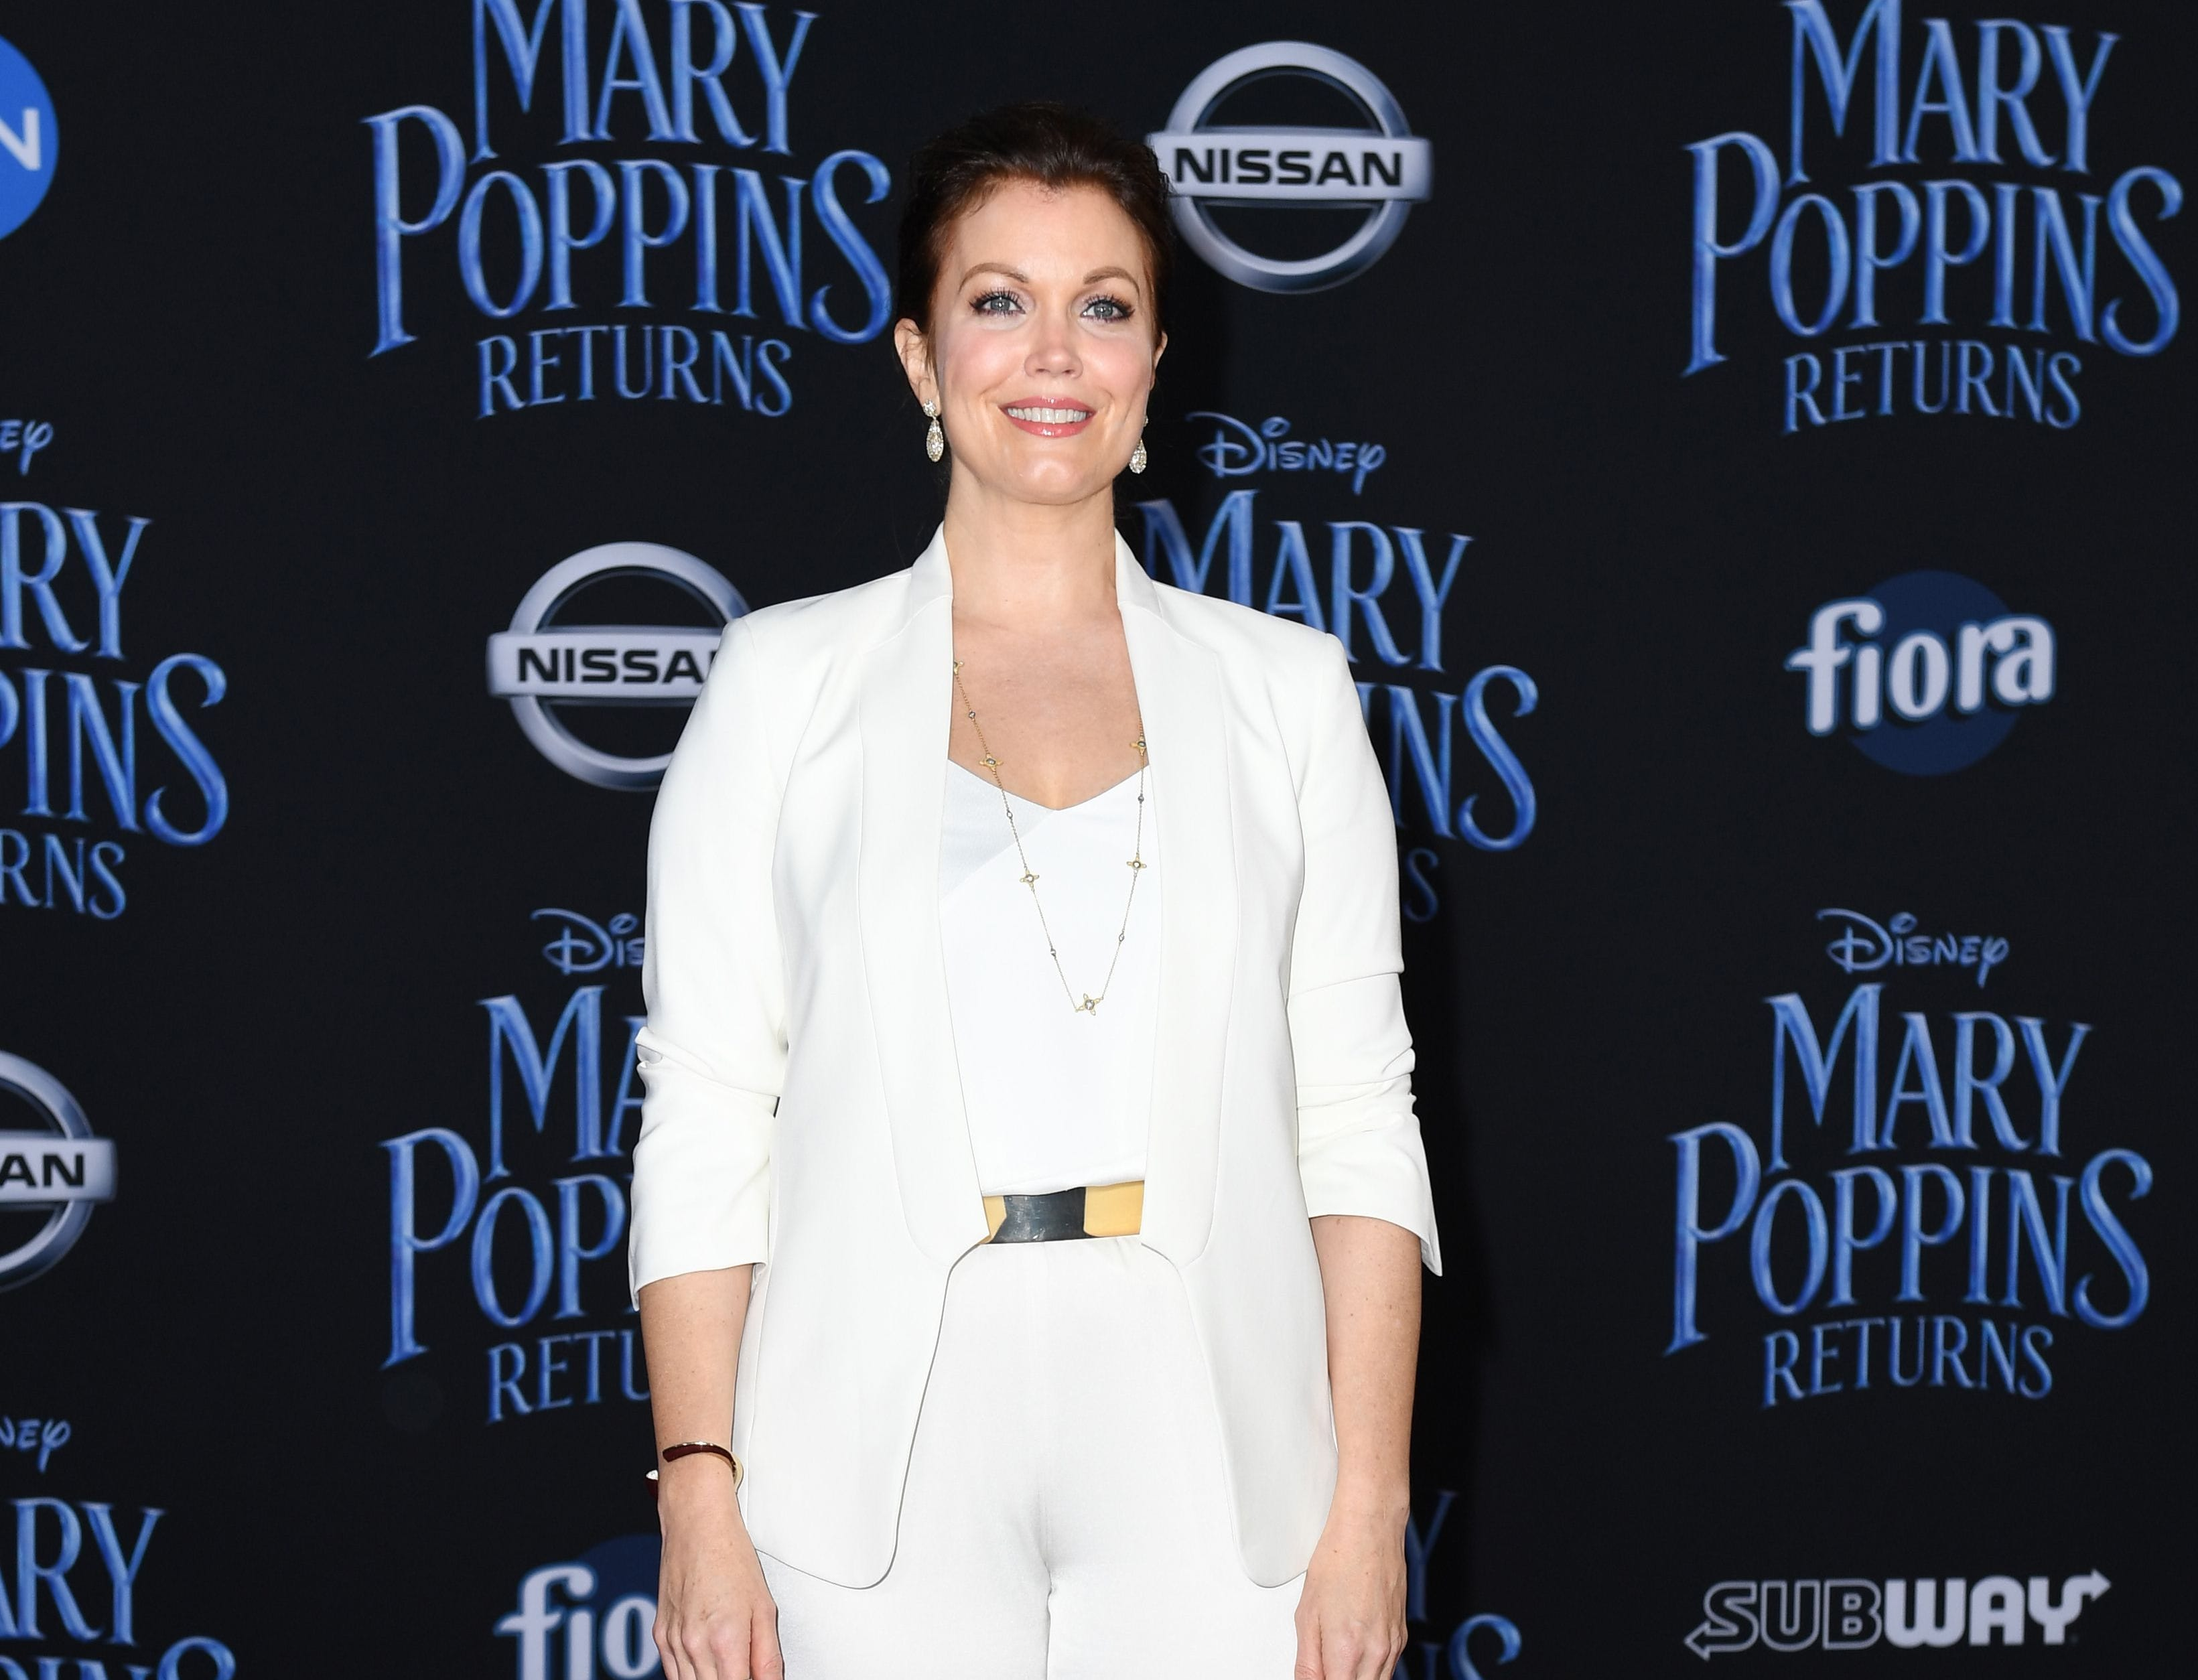 """US actress Bellamy Young arrives for the world premiere of Disney's """"Mary Poppins Returns"""" at the Dolby theatre in Hollywood on November 29, 2018. (Photo by VALERIE MACON / AFP)VALERIE MACON/AFP/Getty Images ORG XMIT: 'Mary Pop ORIG FILE ID: AFP_1B80Z5"""